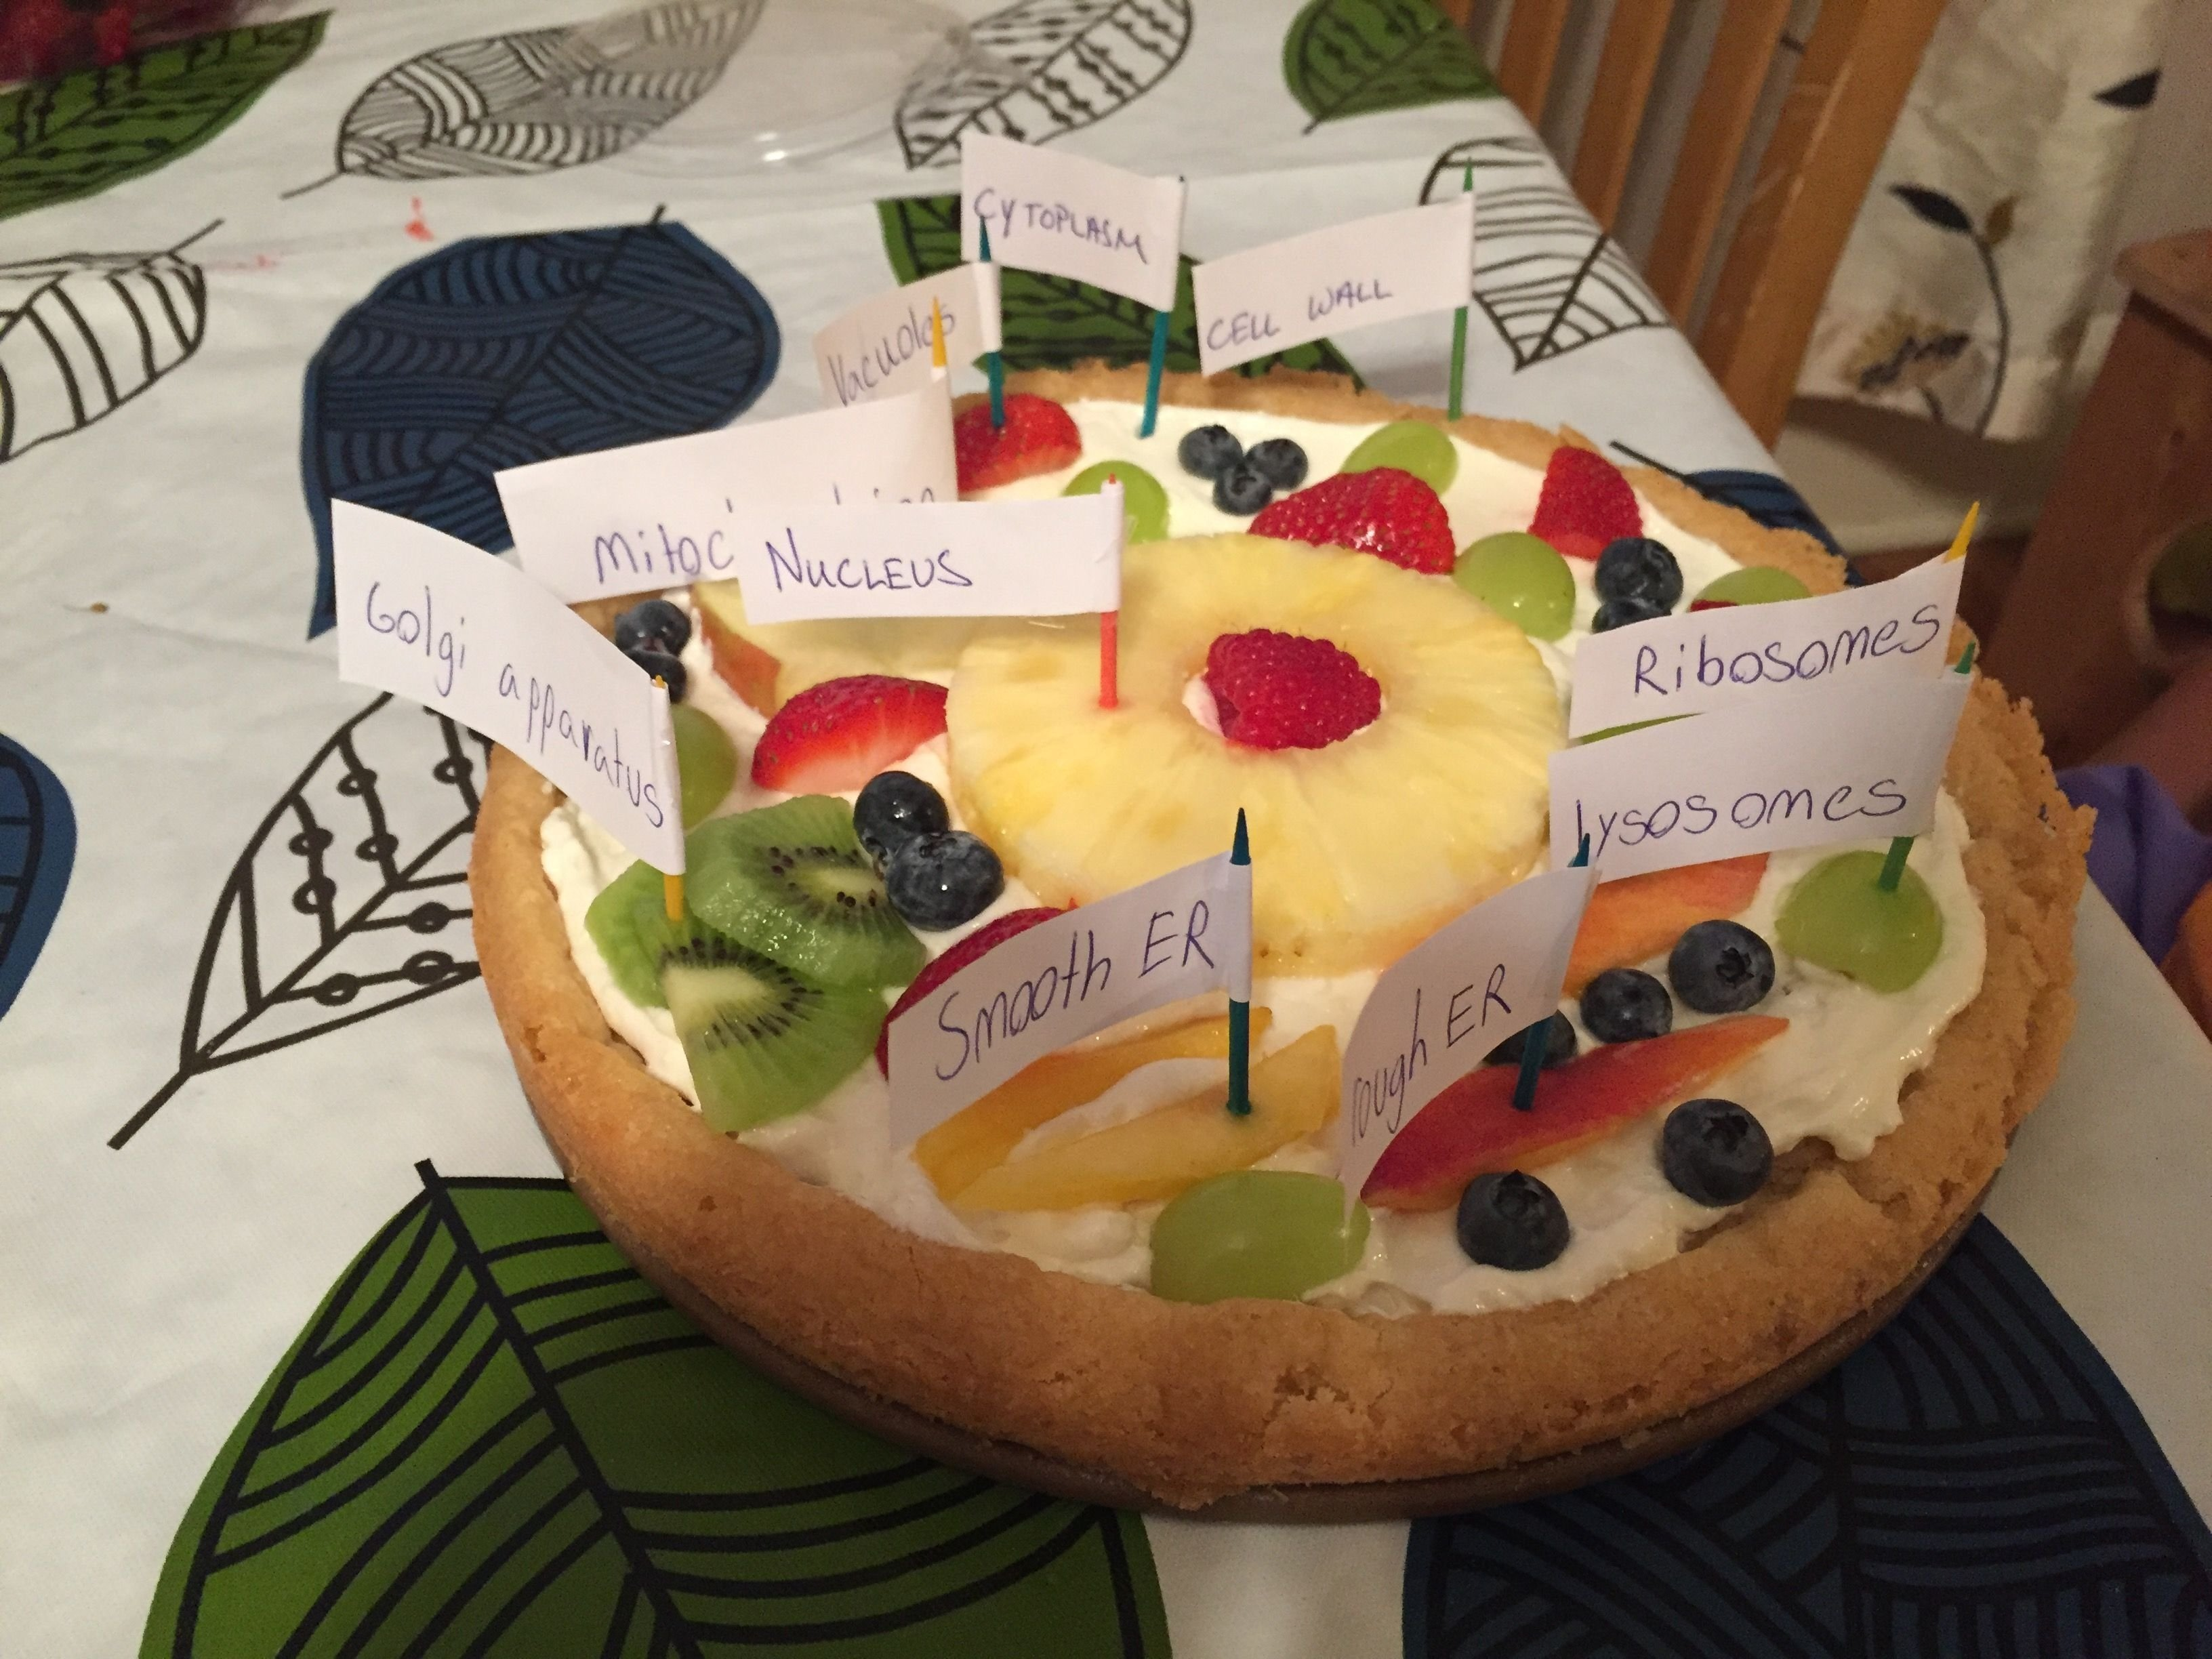 10 Ideal Edible Plant Cell Project Ideas animal cell fruit pizza animal cell pizza ingredients plant cell 2020